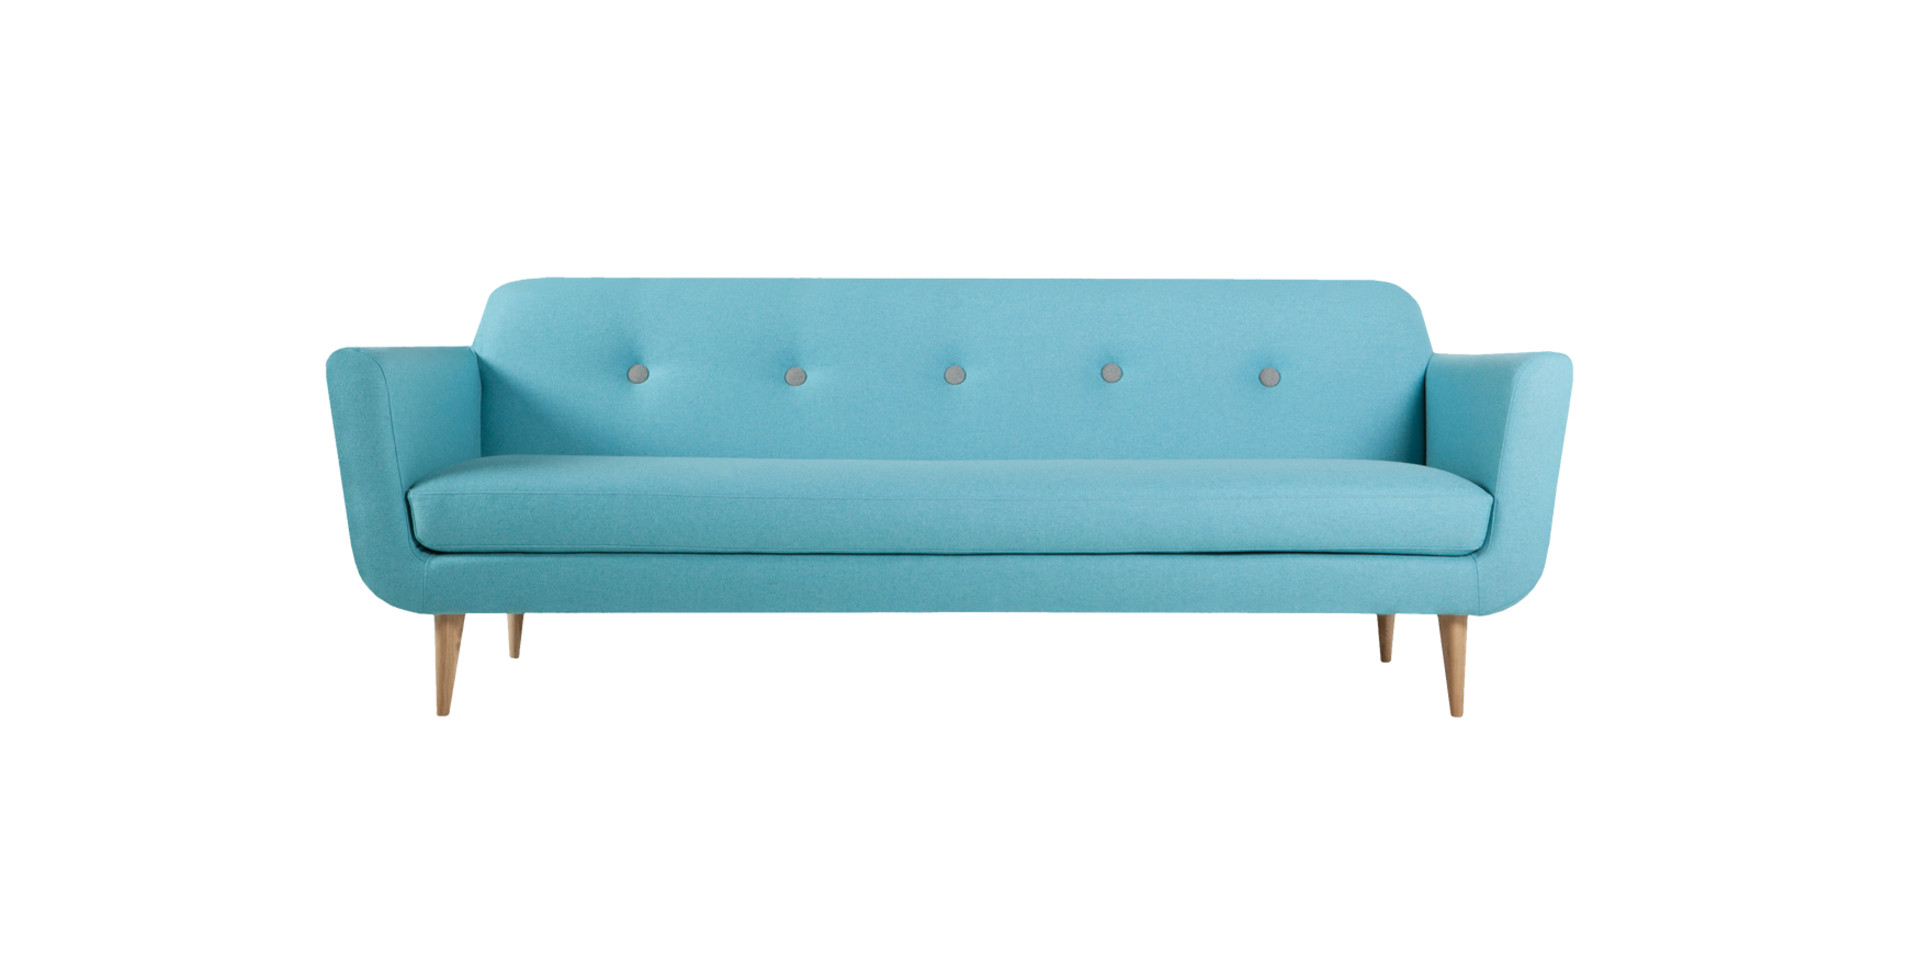 sits-otto-canape-3seater_panno2274_light_turquoise_1